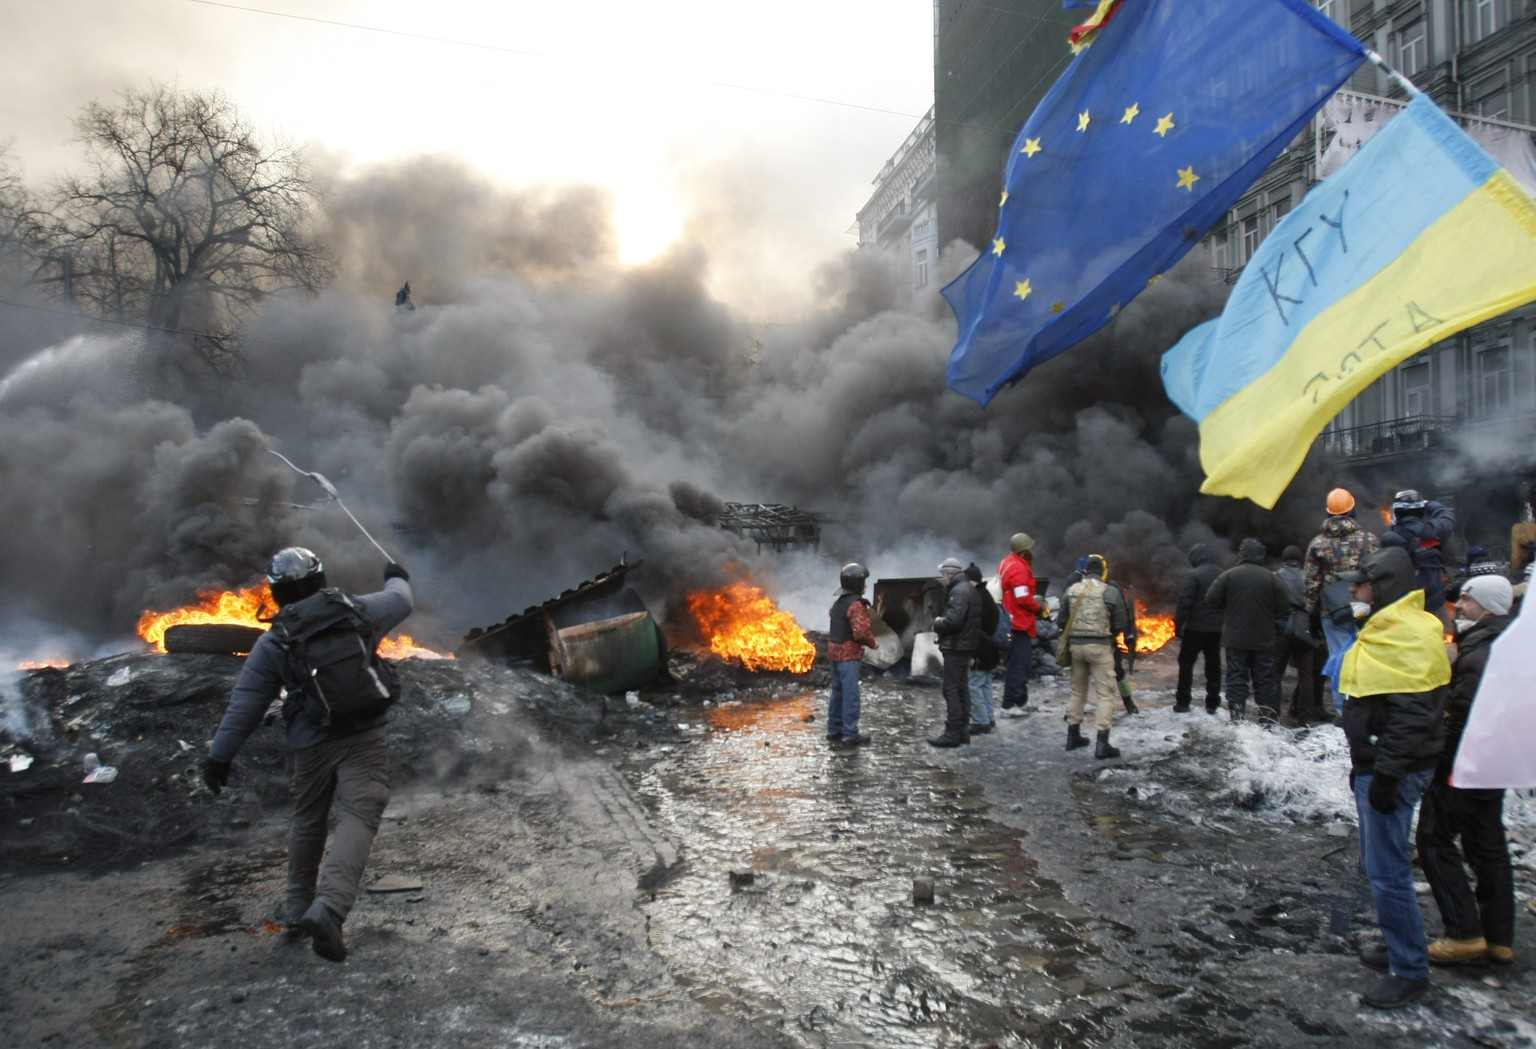 A protester throws stone during clashes, in central Kiev, Ukraine, Thursday Jan. 23, 2014. Thick black smoke from burning tires engulfed parts of downtown Kiev as an ultimatum issued by the opposition to the president to call early election or face street rage was set to expire with no sign of a compromise on Thursday. (AP Photo/Darko Vojinovic)